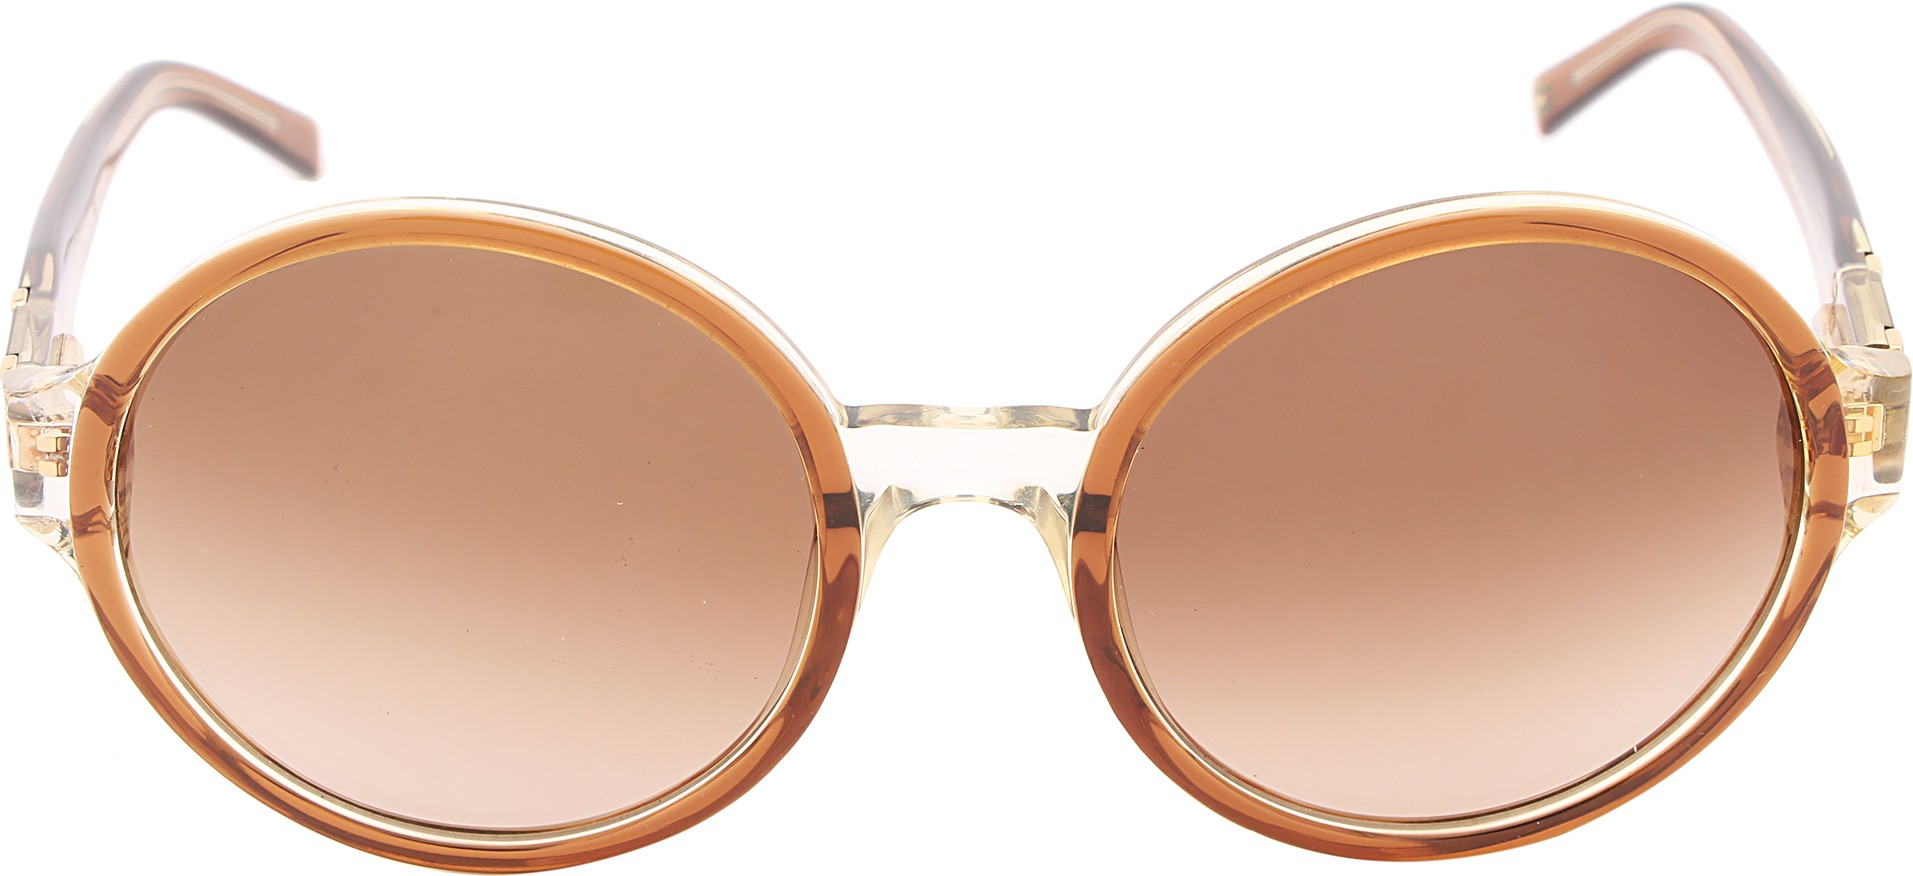 Deals - Delhi - Minimum 50% Off <br> Womens Sunglasses<br> Category - sunglasses<br> Business - Flipkart.com